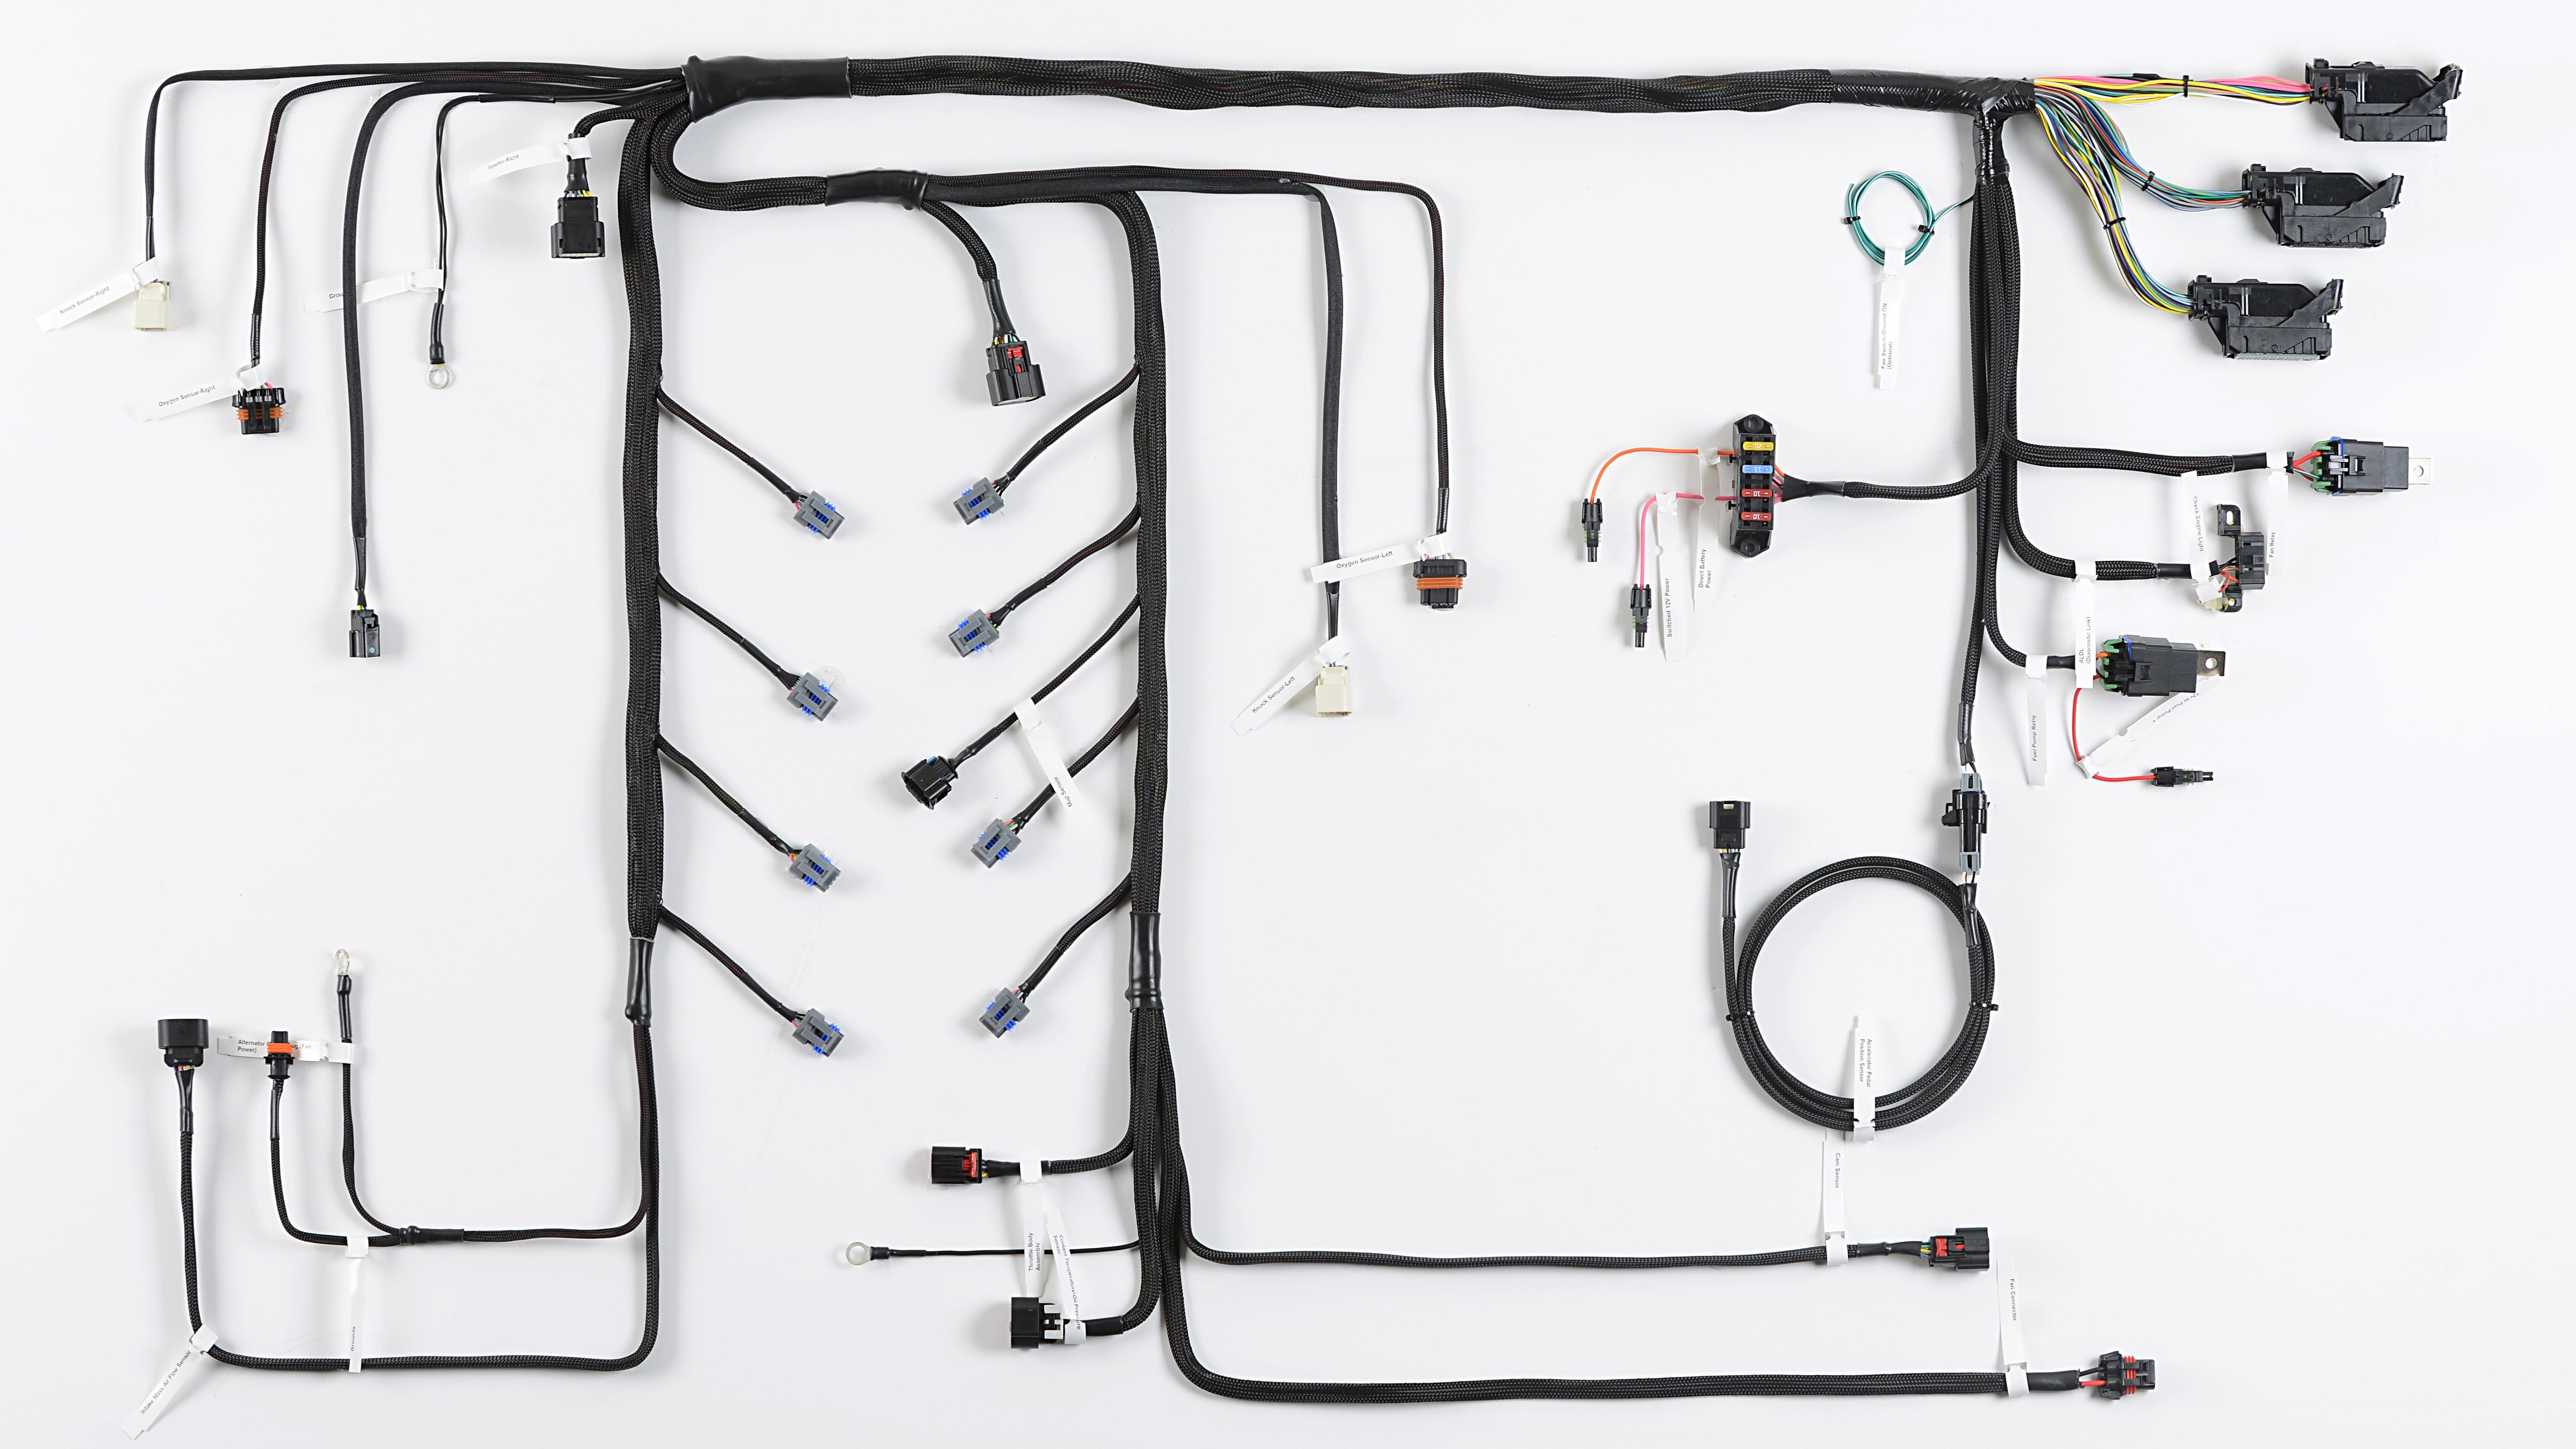 Miraculous Wire It Up Ls Swap Harness Options On A Budget Wiring Cloud Itislusmarecoveryedborg